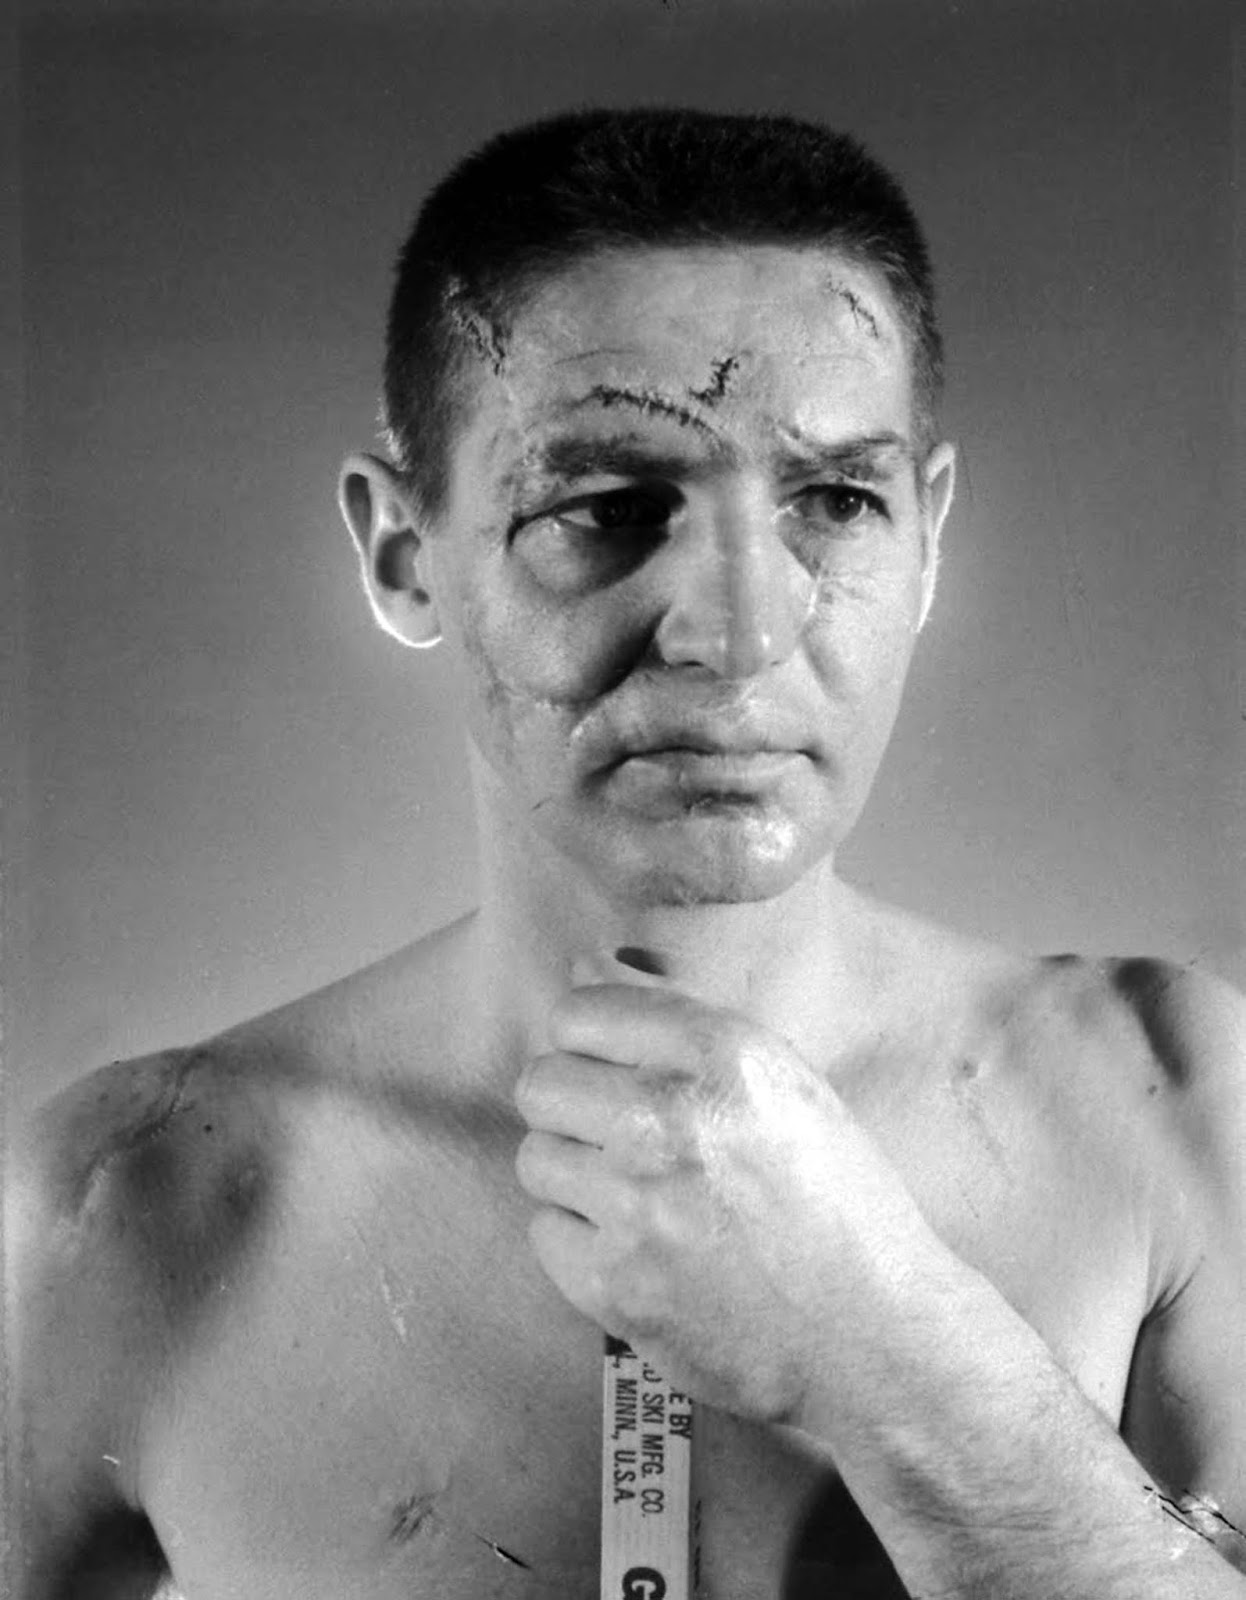 Terry Sawchuk, a face only a hockey puck could love.